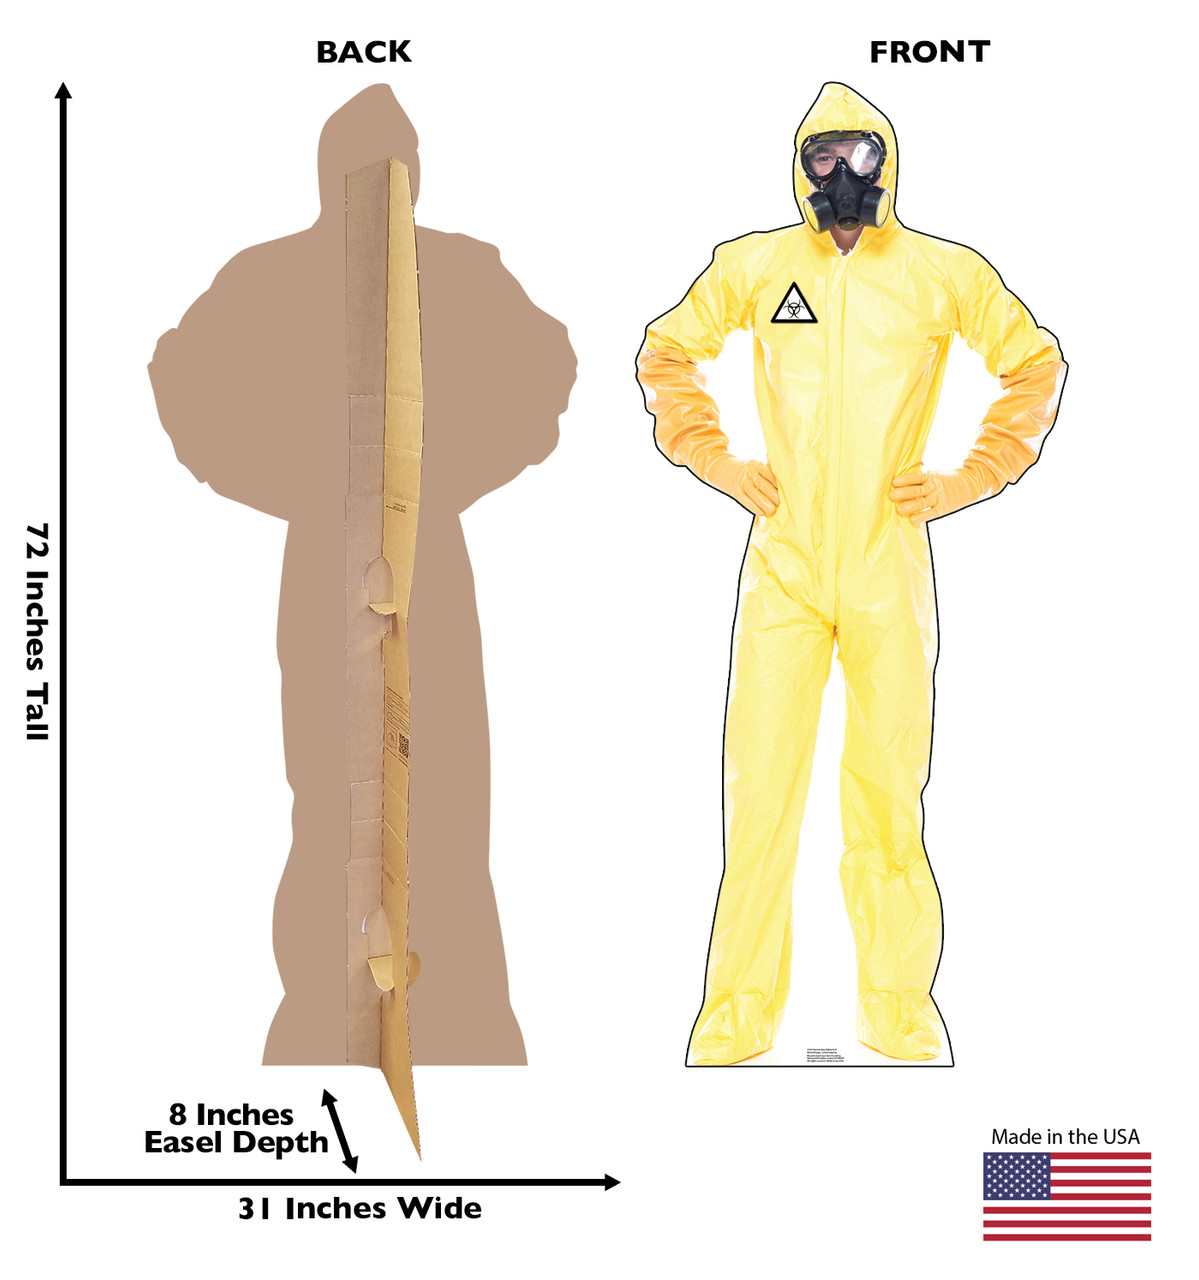 Life-size cardboard standee of a Hazmat Guy in Yellow Suit with front and back dimensions.